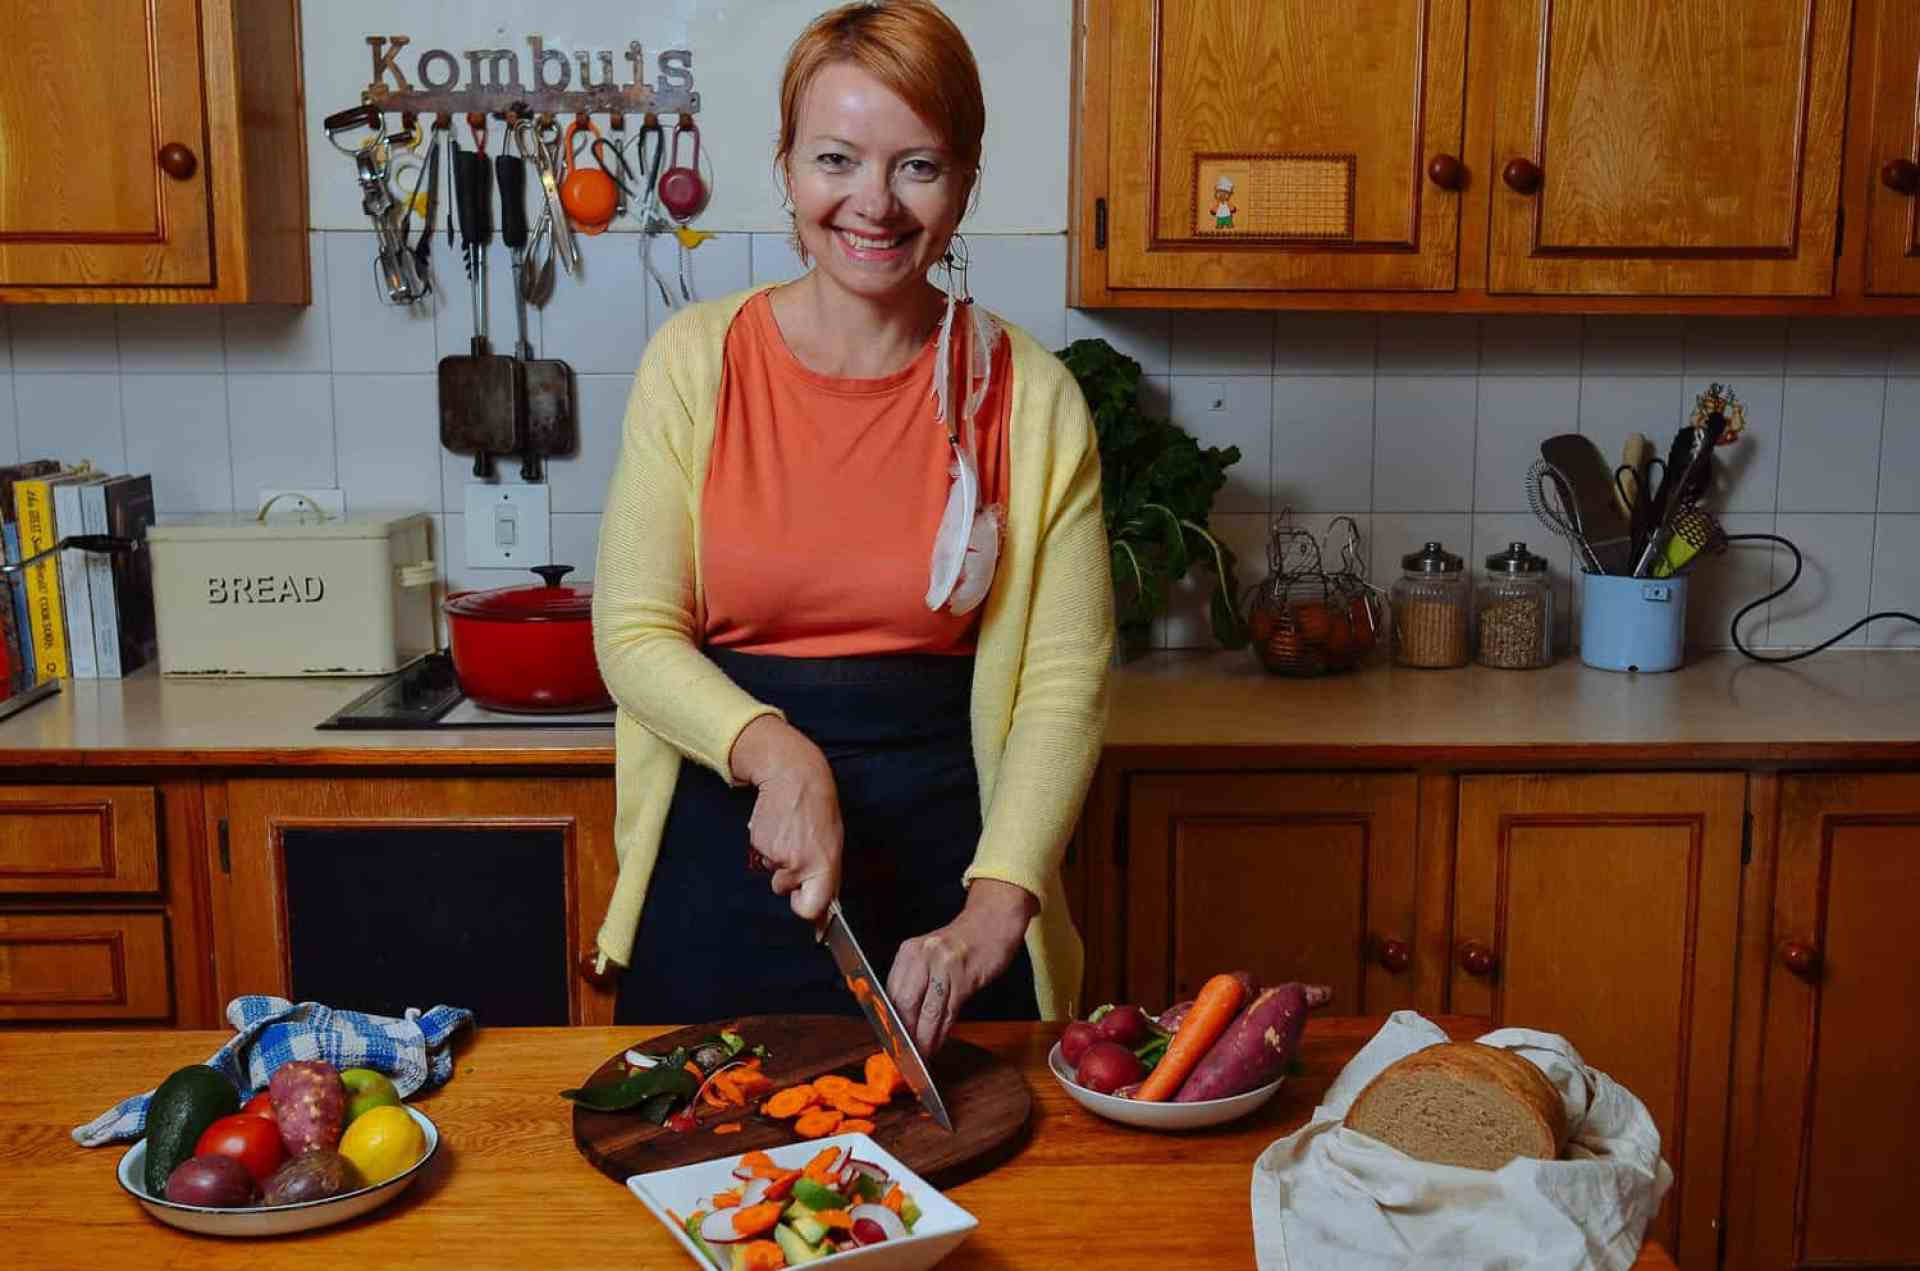 Ulla Pakendorf-Loubser, who is a chef, journalist and health coach, says you can learn so much about another person's culture by simply tasting their food.